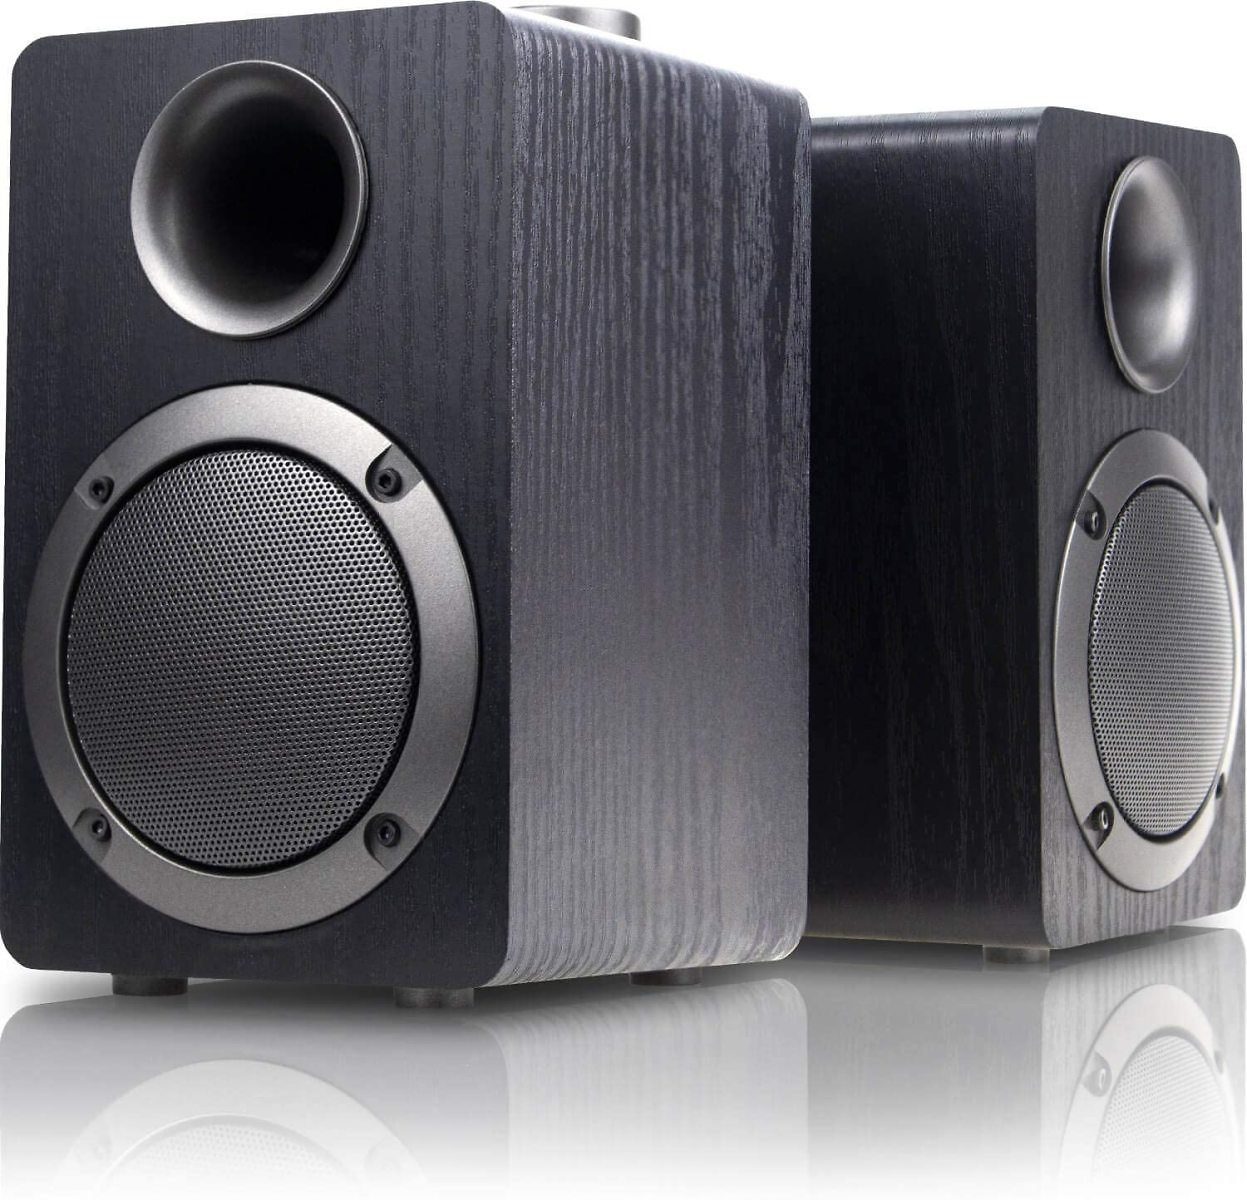 USB-Powered PC Computer Speakers; Mica PB20i with 2.0CH Surround Sound, Wooden Wired LED Volume Control Mini Speaker for Multipl